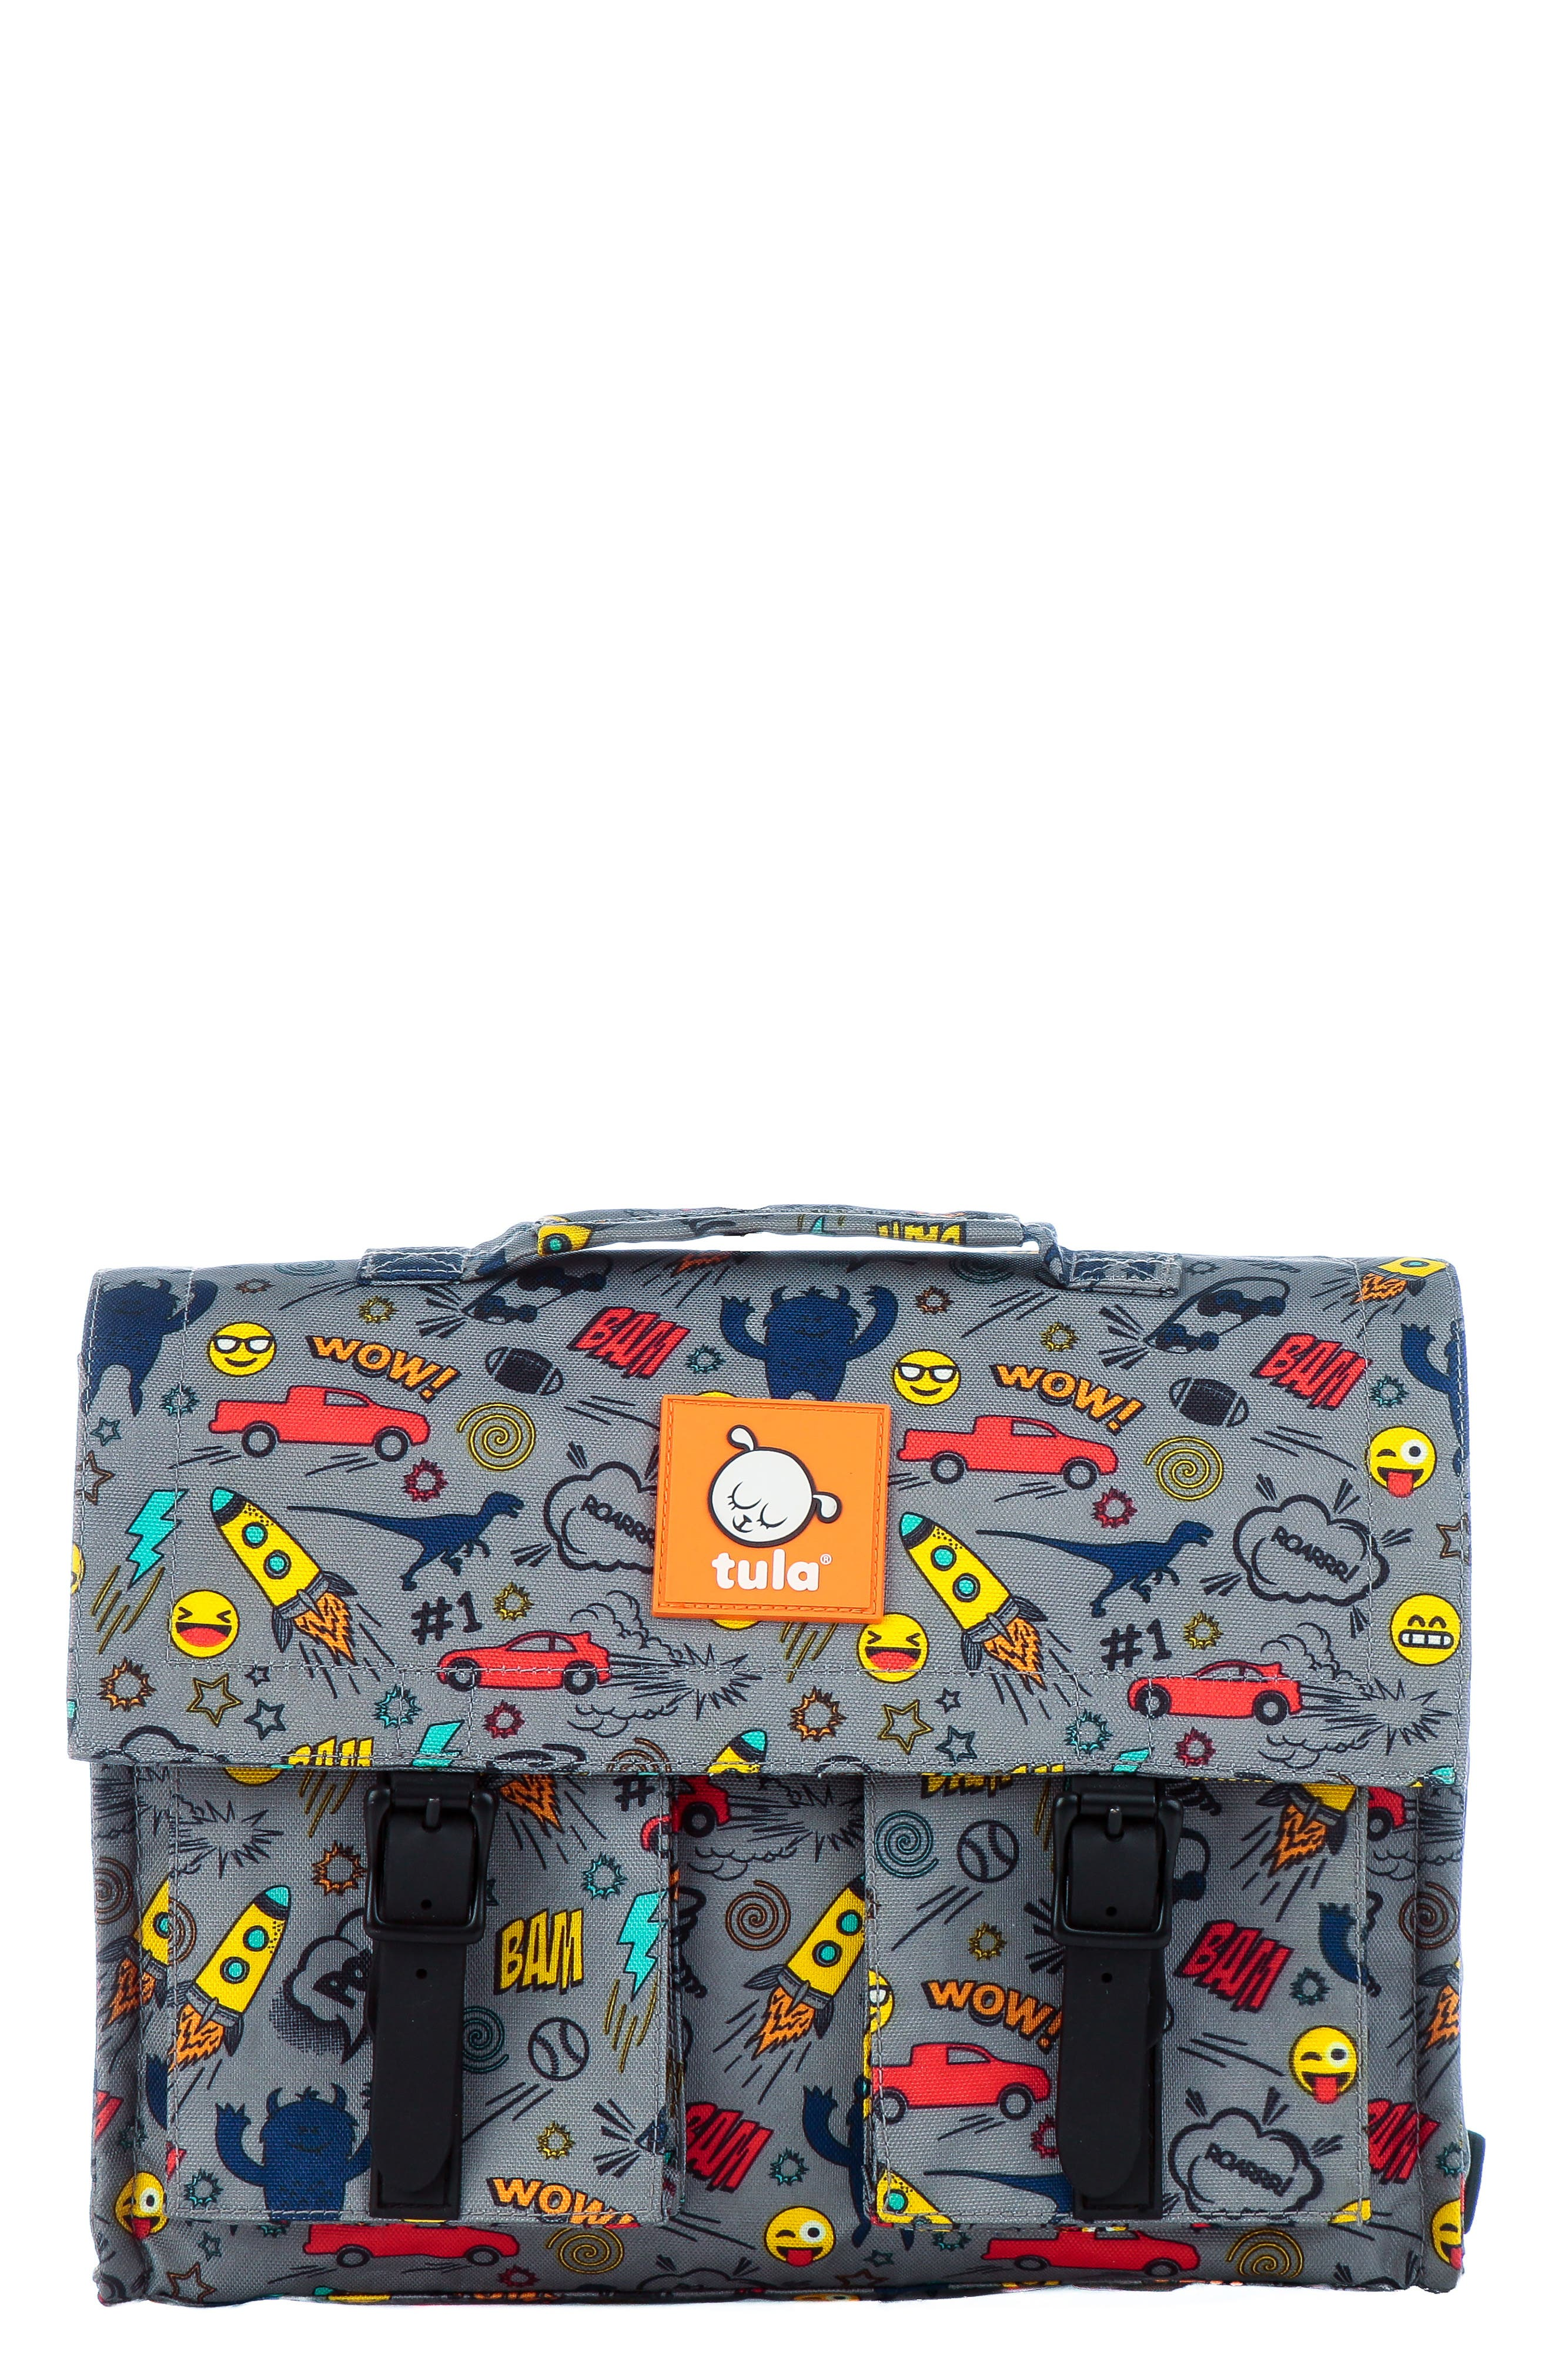 Stamps Backpack,                         Main,                         color, 020